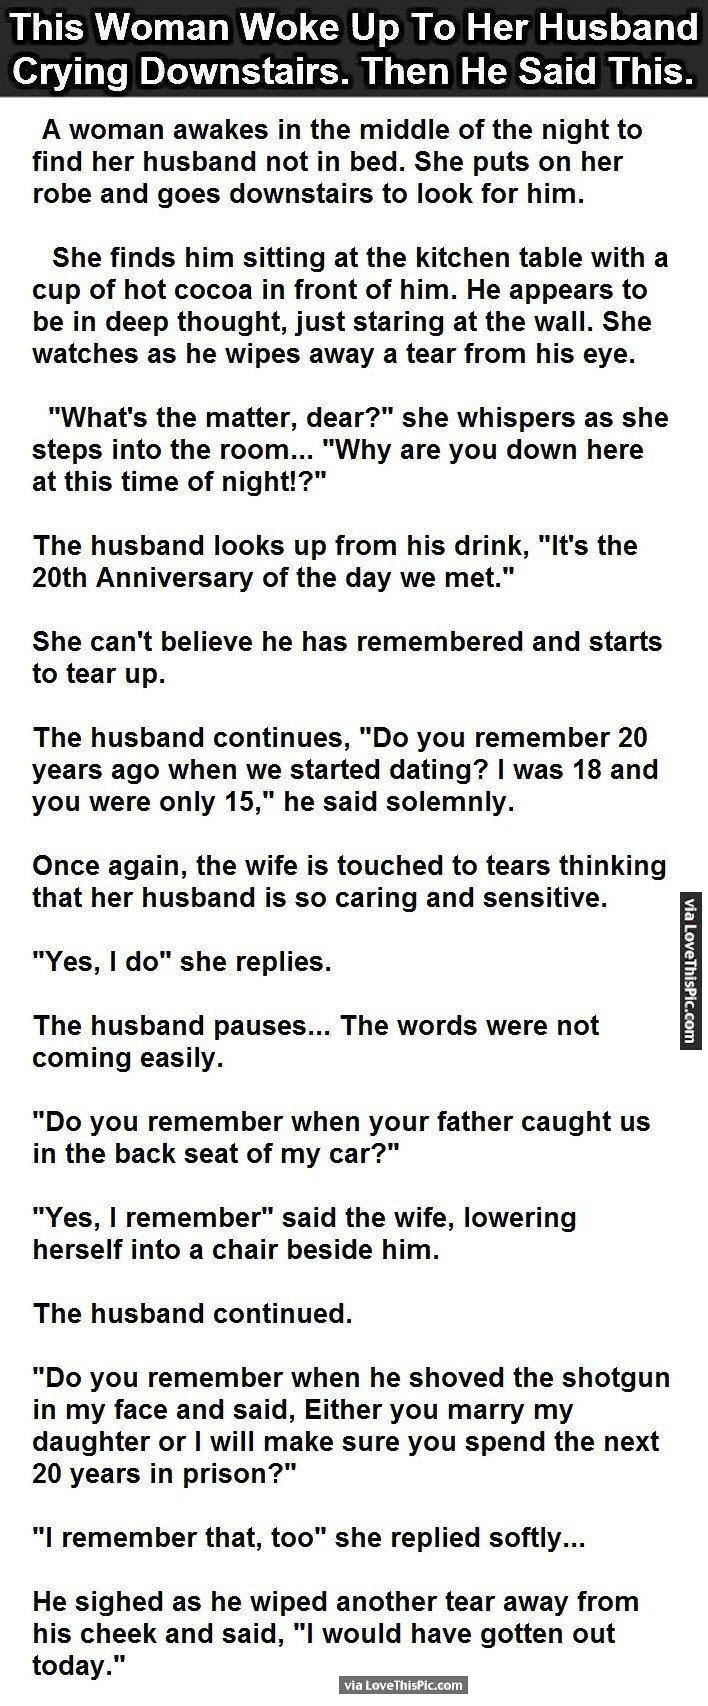 This Woman Woke Up To Her Husband Crying Downstairs Then He Said This Joke Stories Short Humor Funny